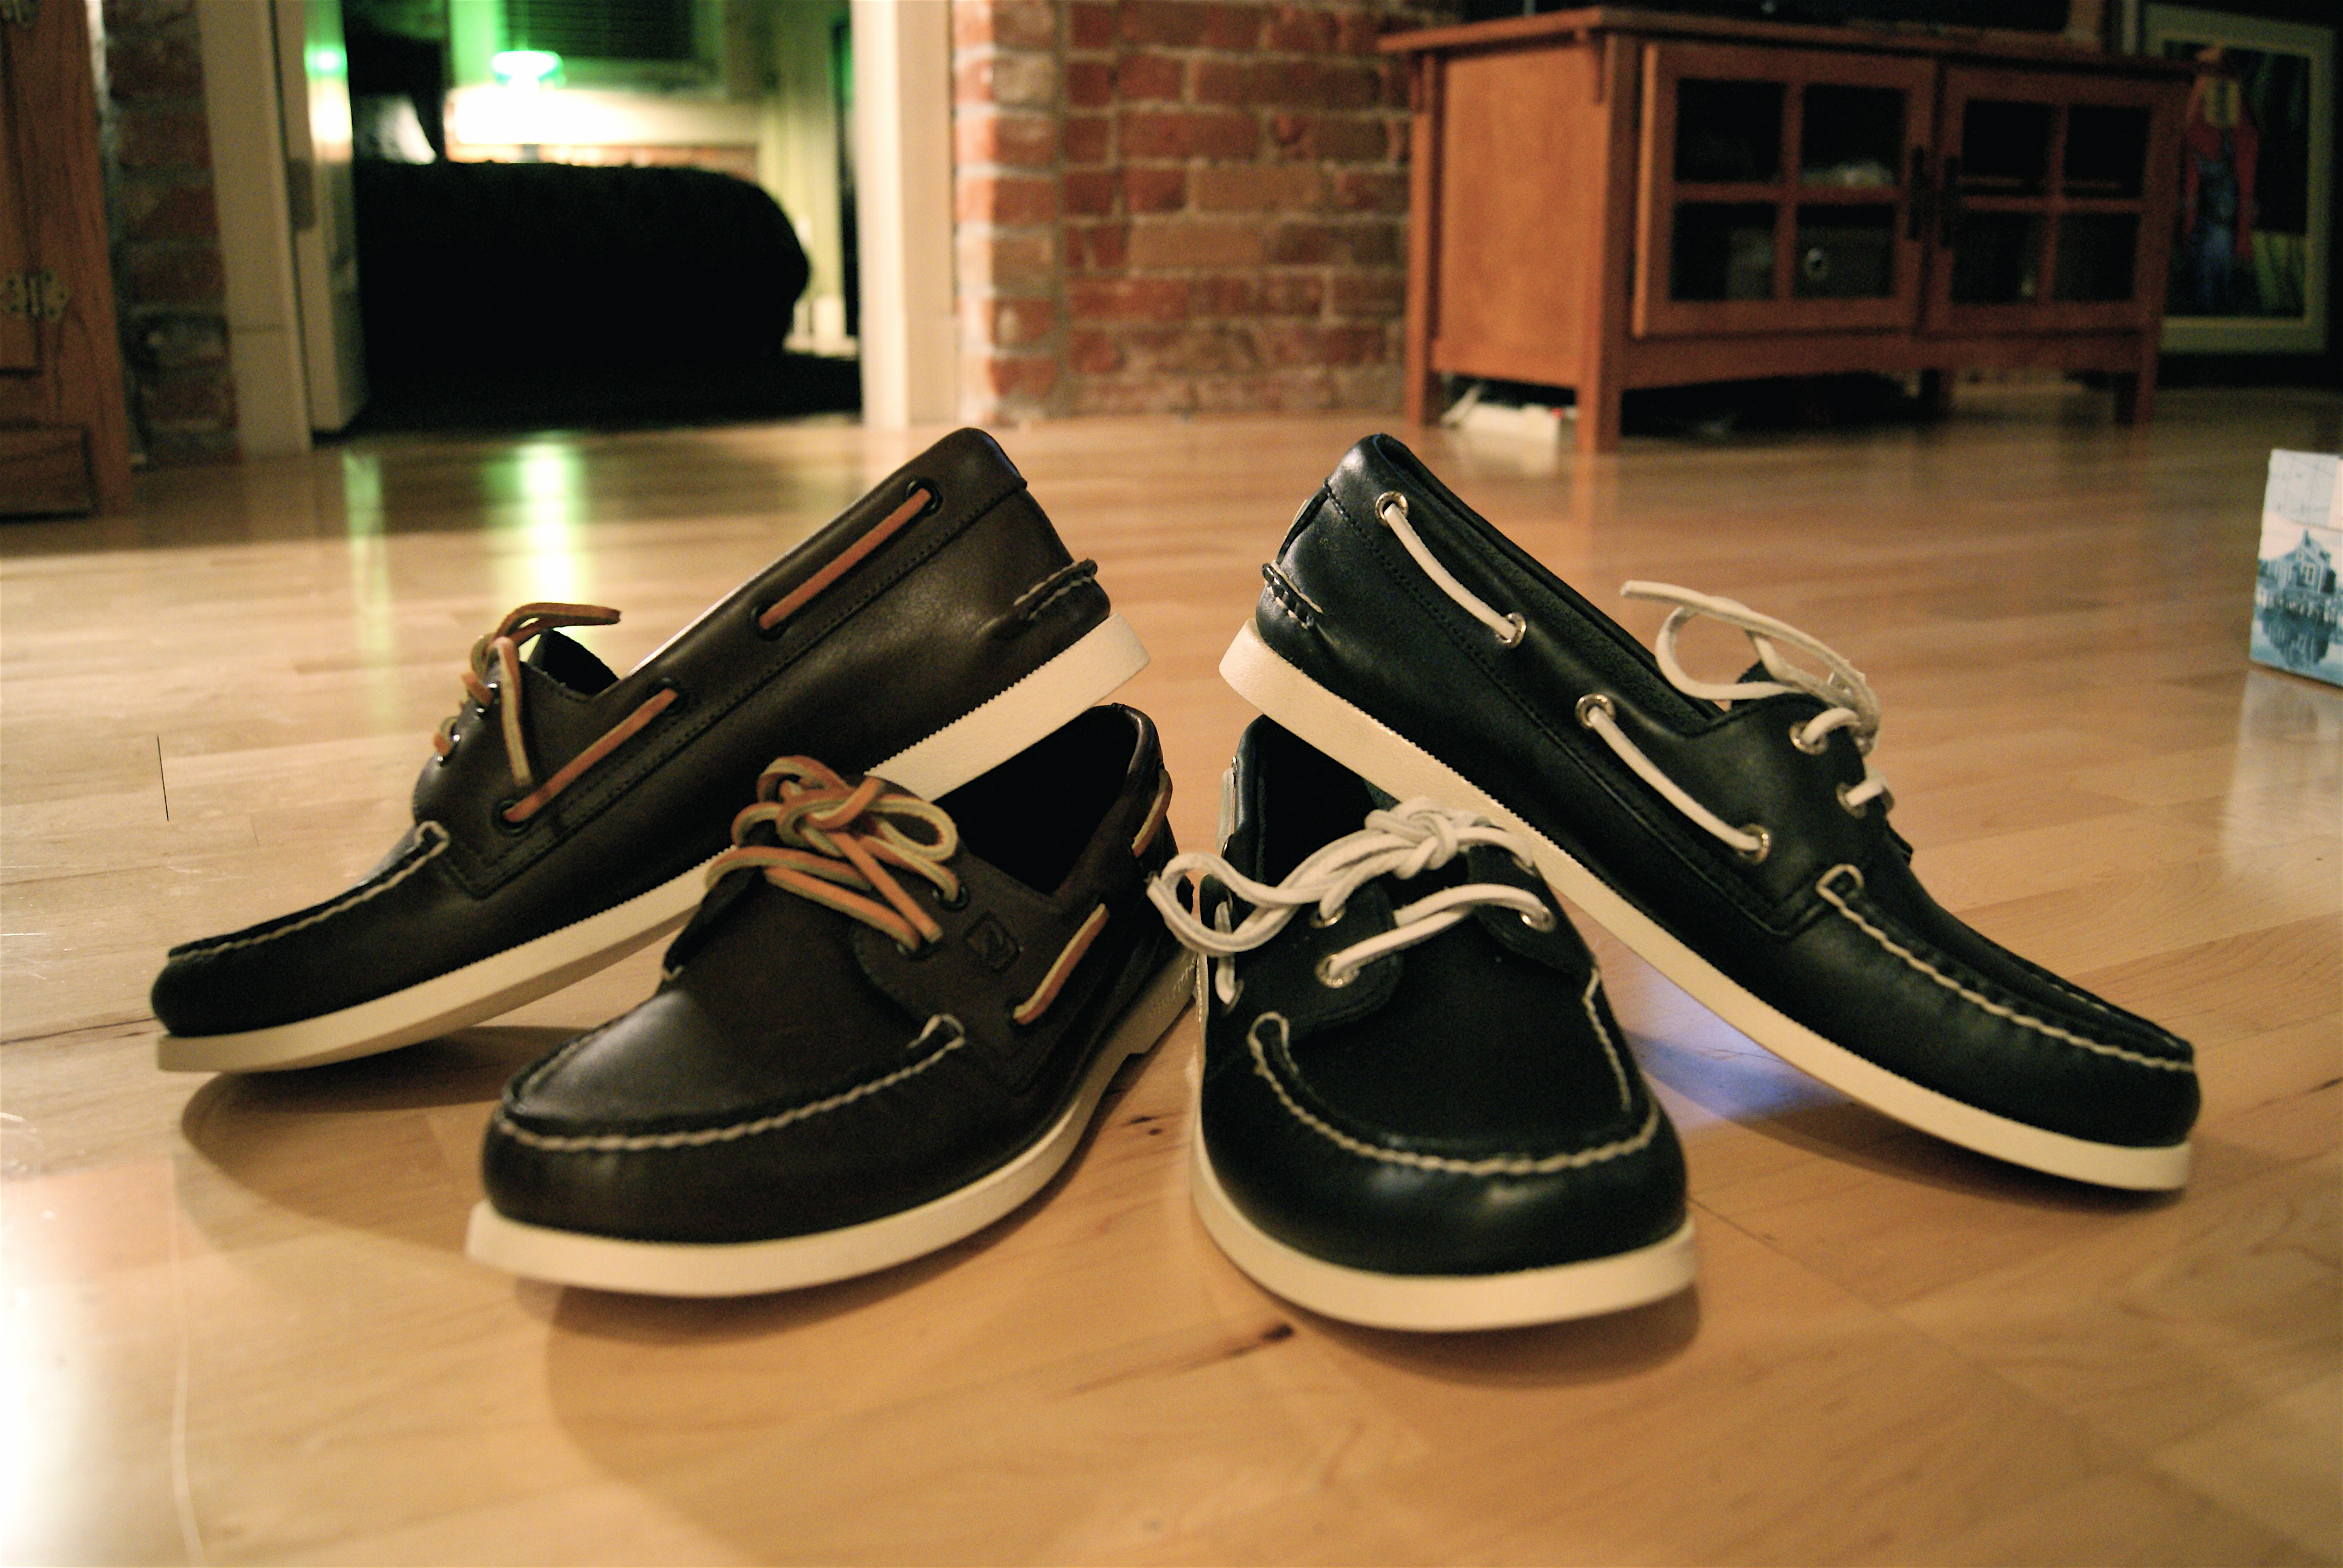 Hunted Amp Gathered Sperry Topsiders At Marshall S The